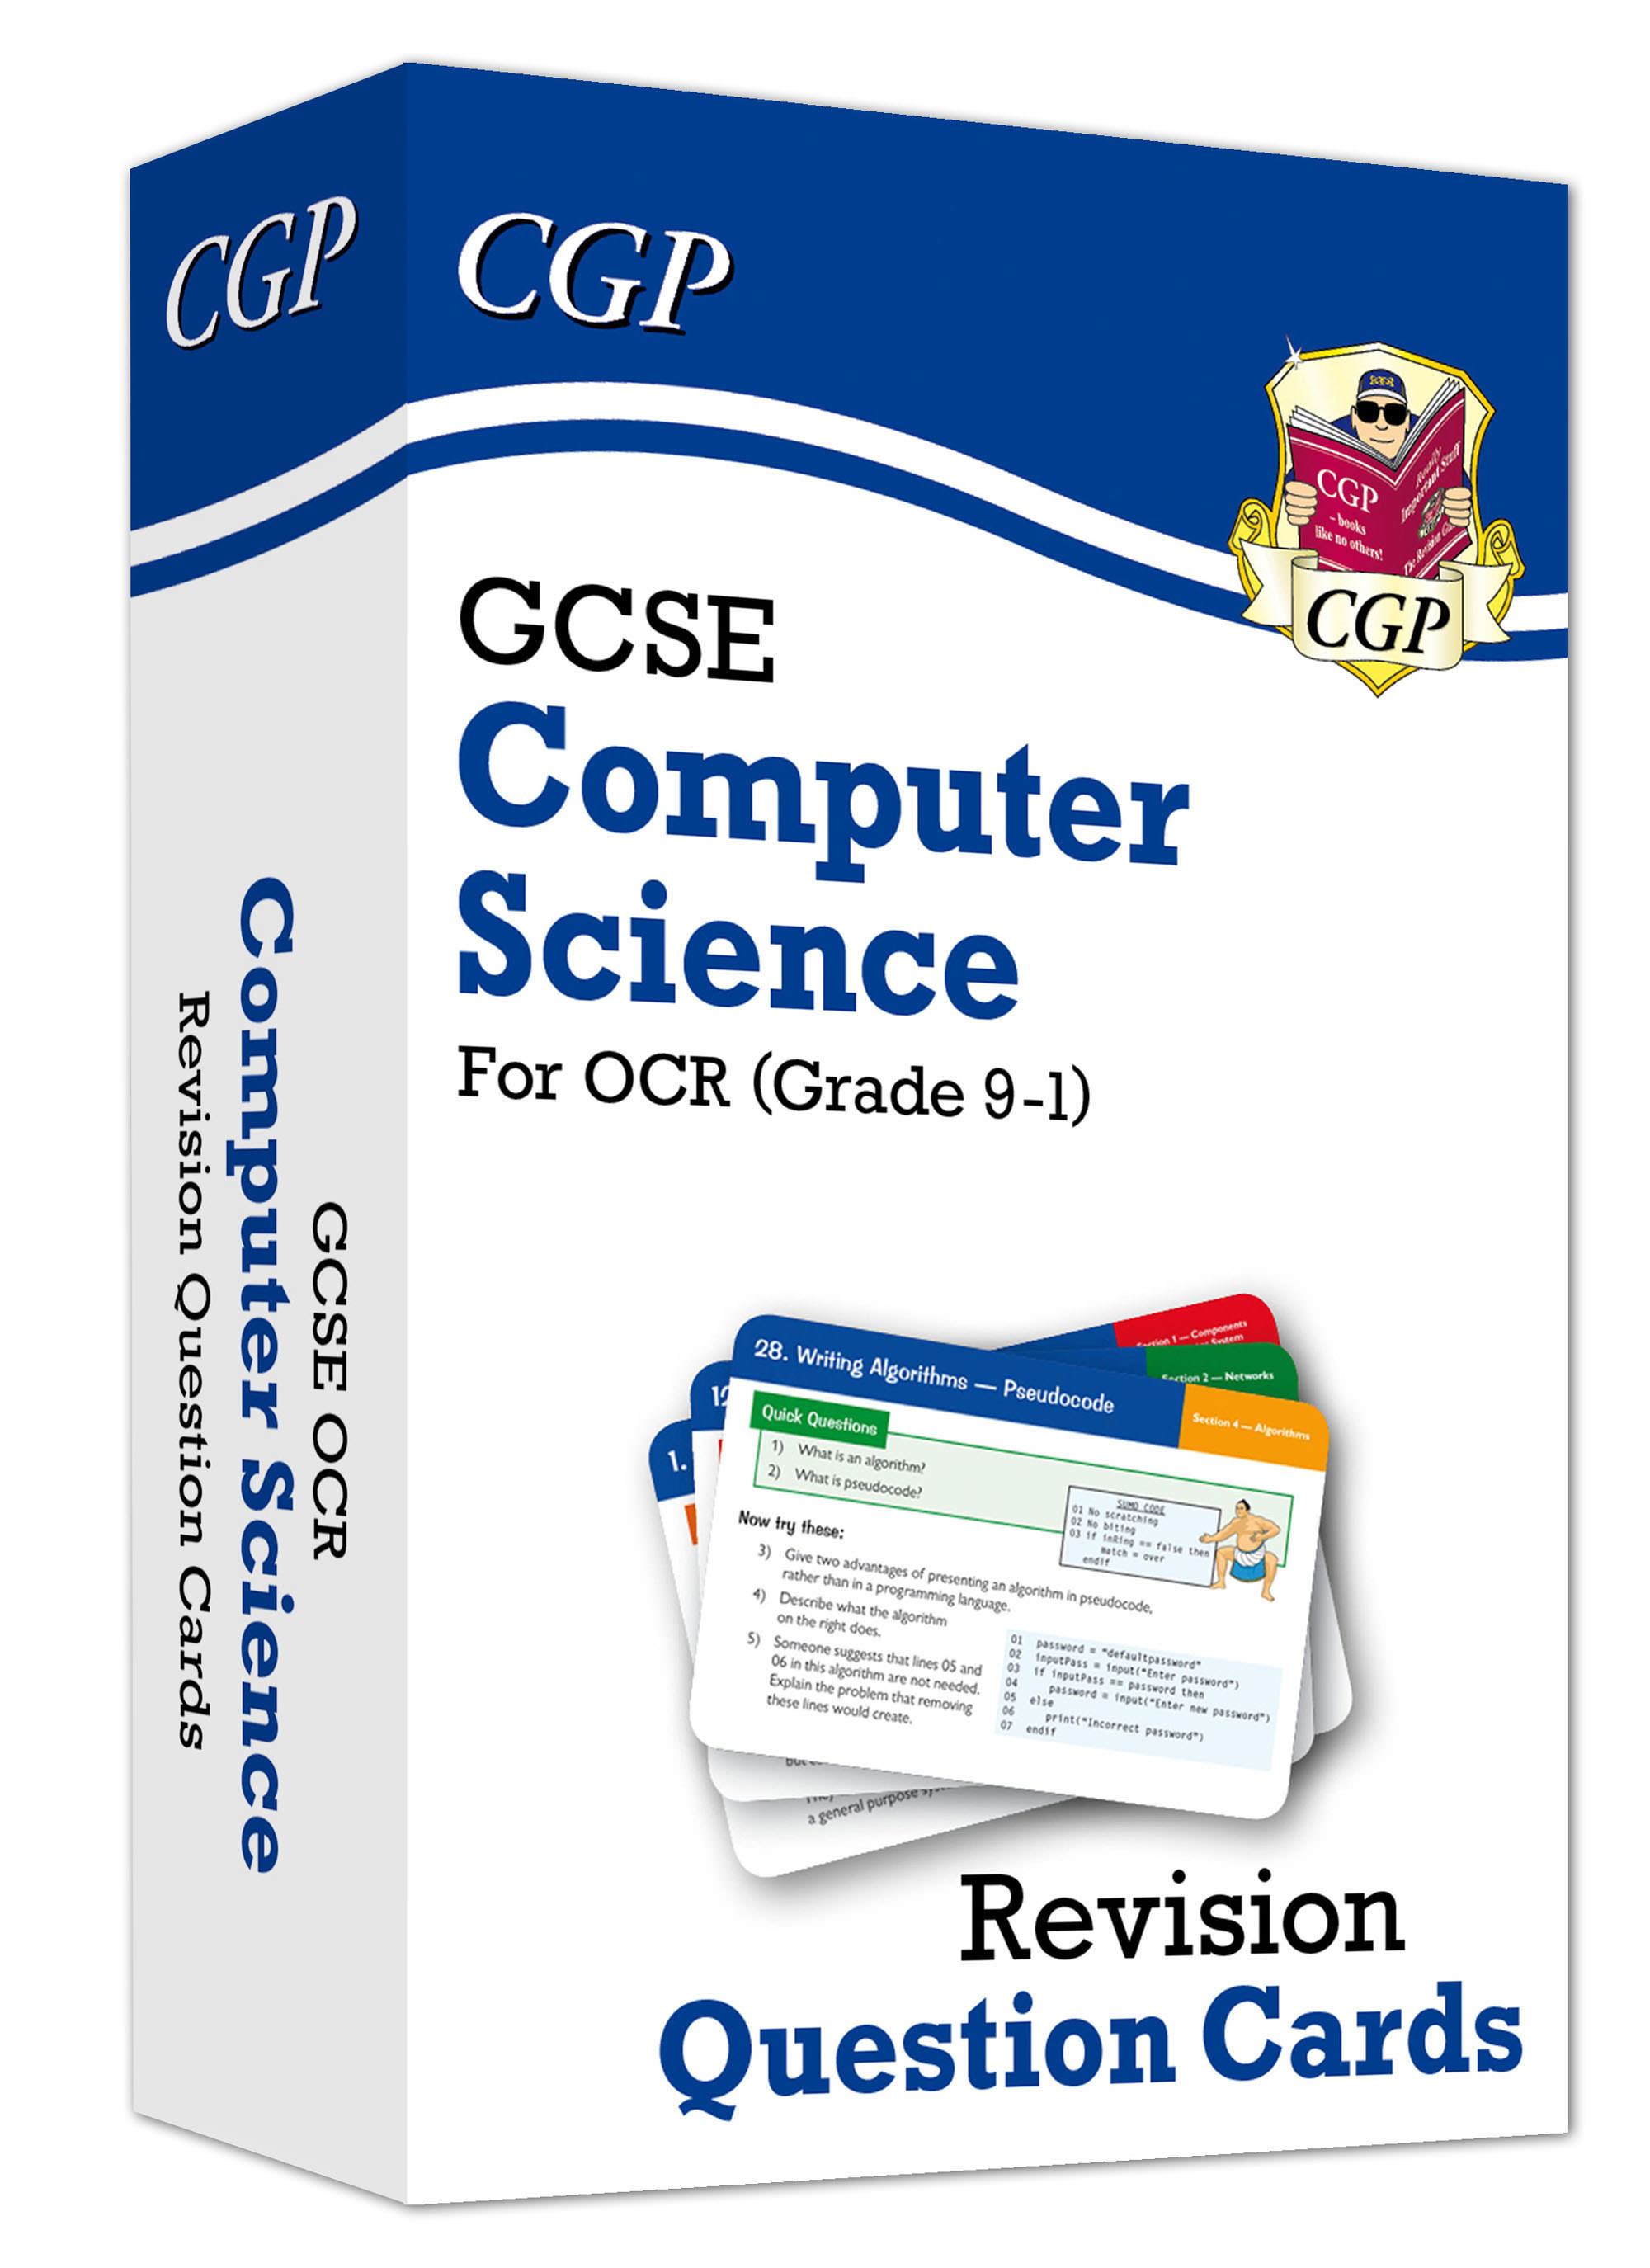 COF41 - Grade 9-1 GCSE Computer Science OCR Revision Question Cards - for exams in 2021